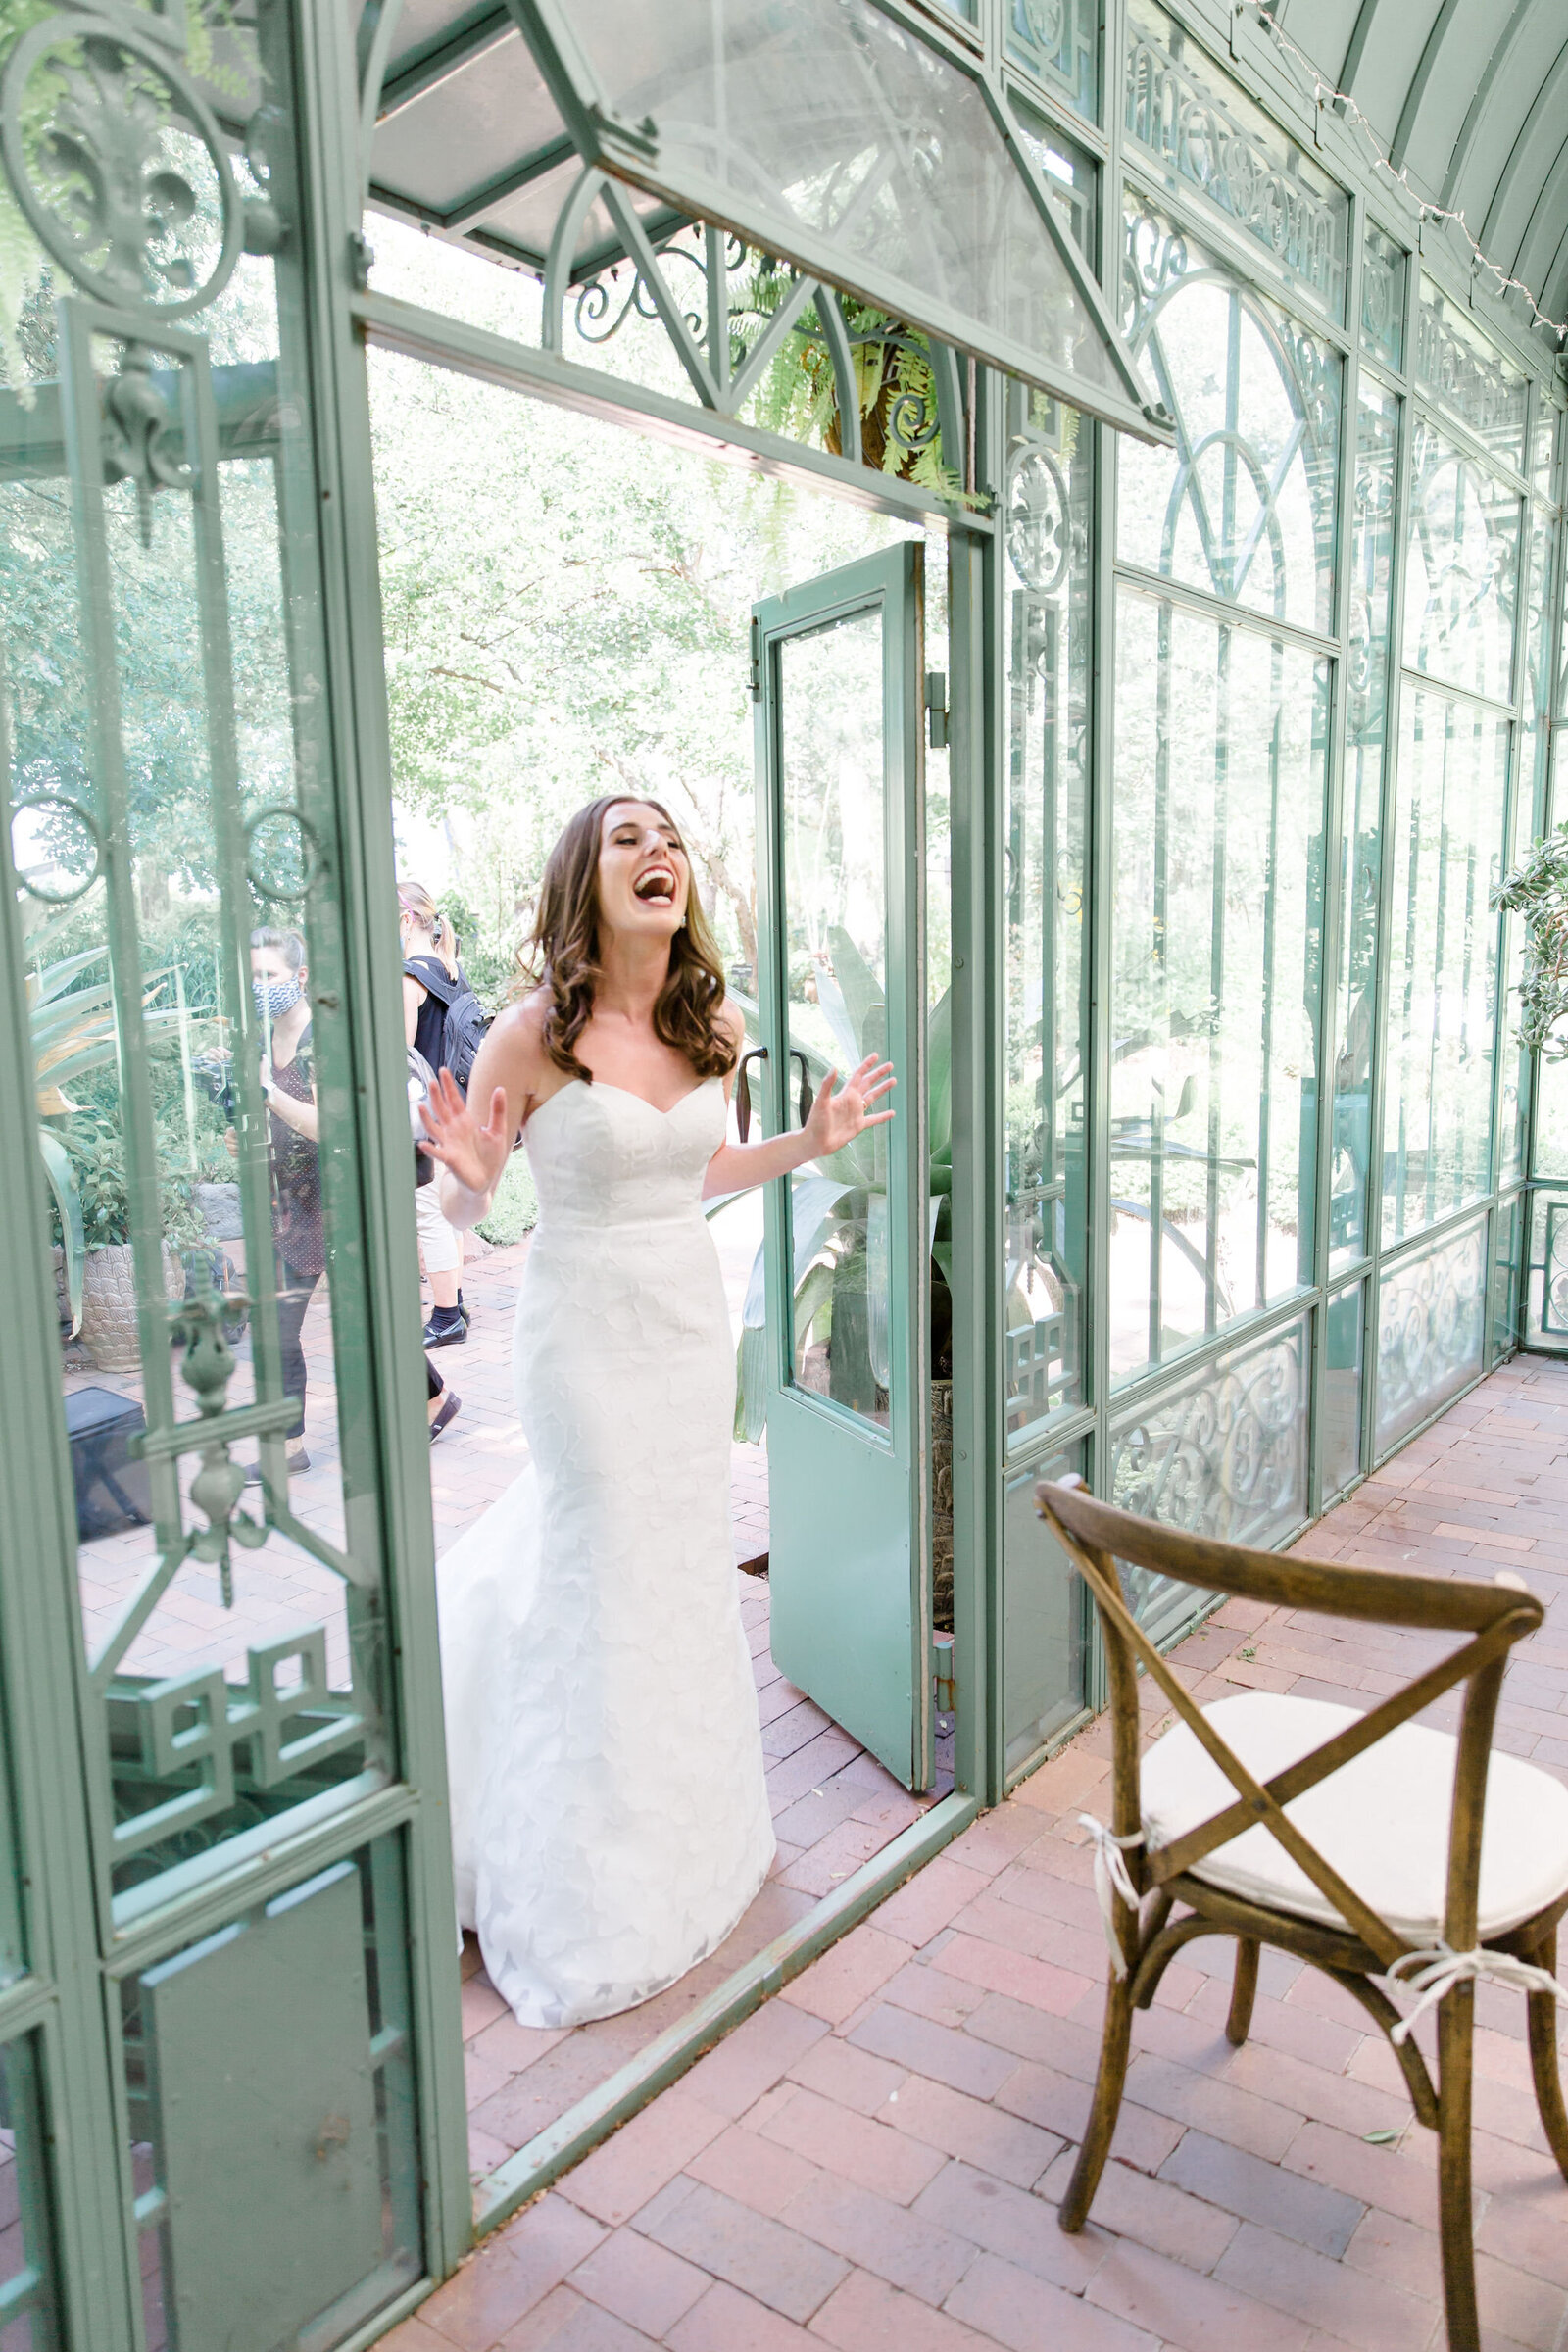 First Look, Michele with one L, Woodland Mosaic Wedding